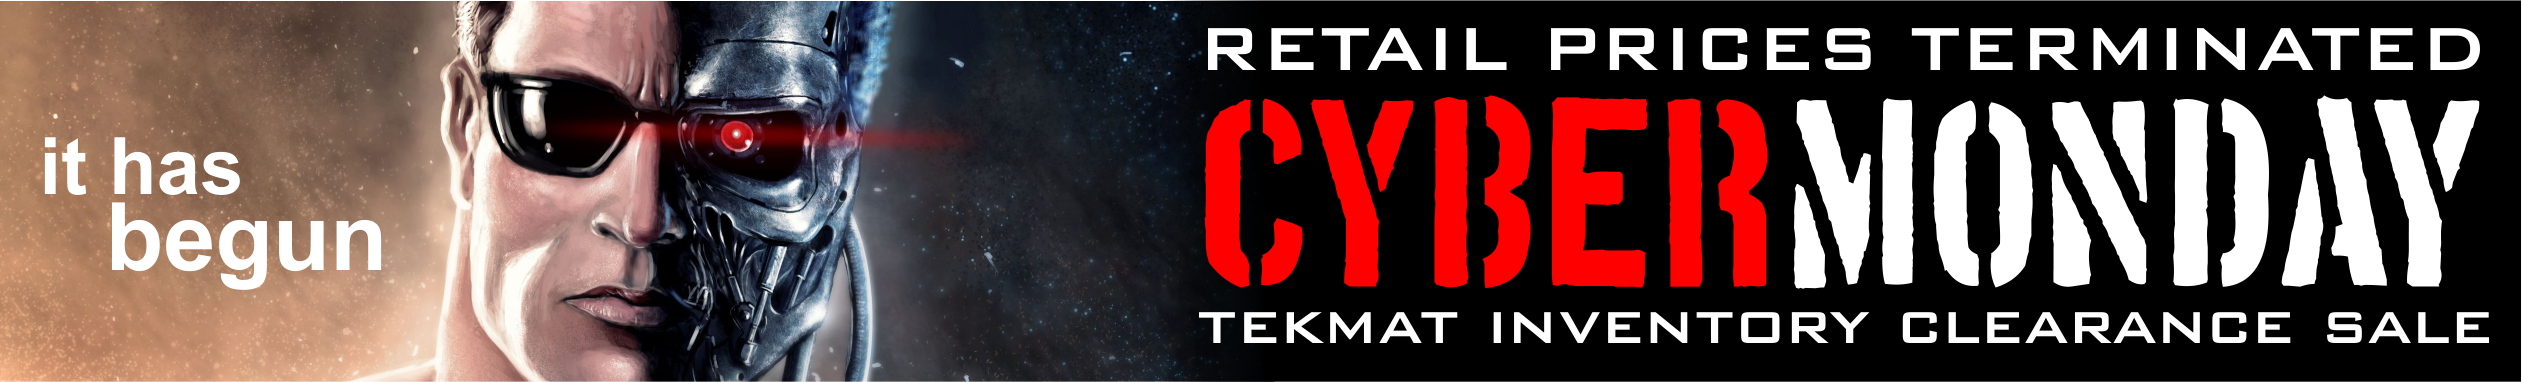 2020-cyber-monday-banner.png